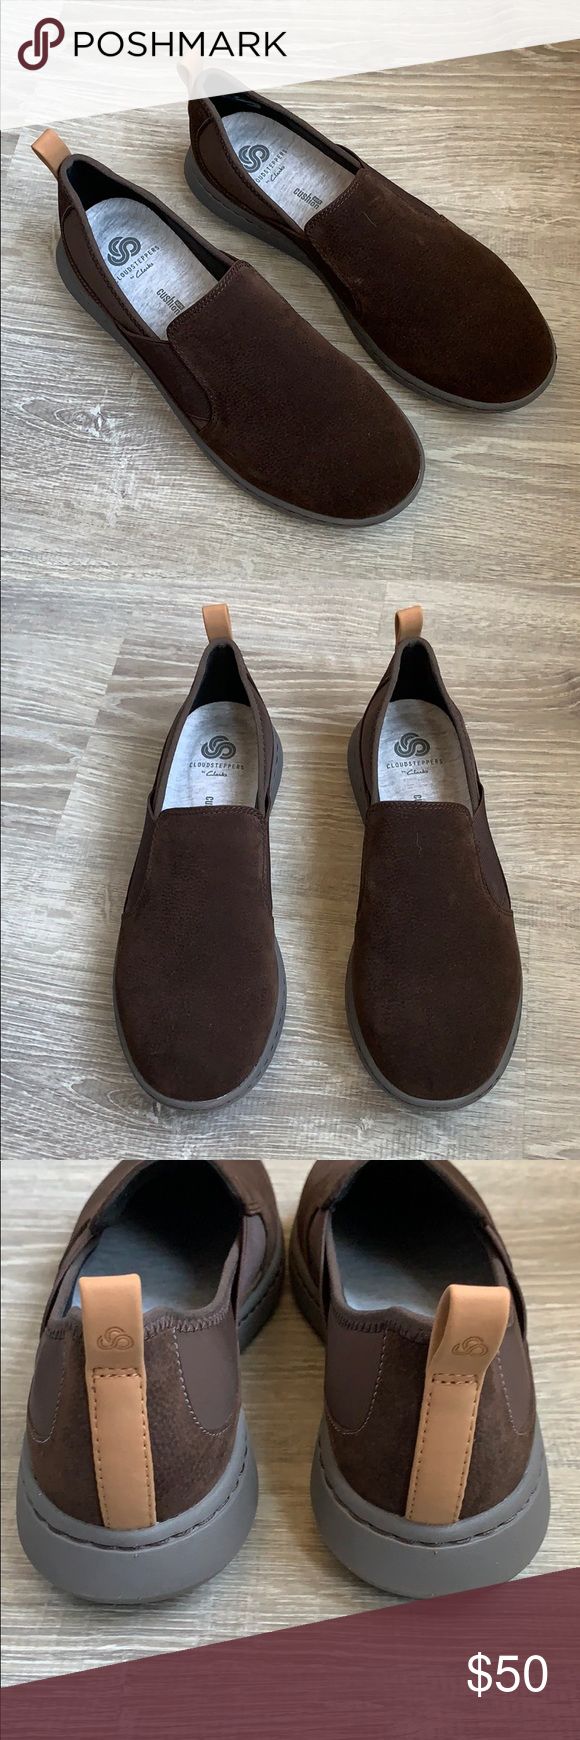 New Clarks Cloudsteppers shoes | Womens